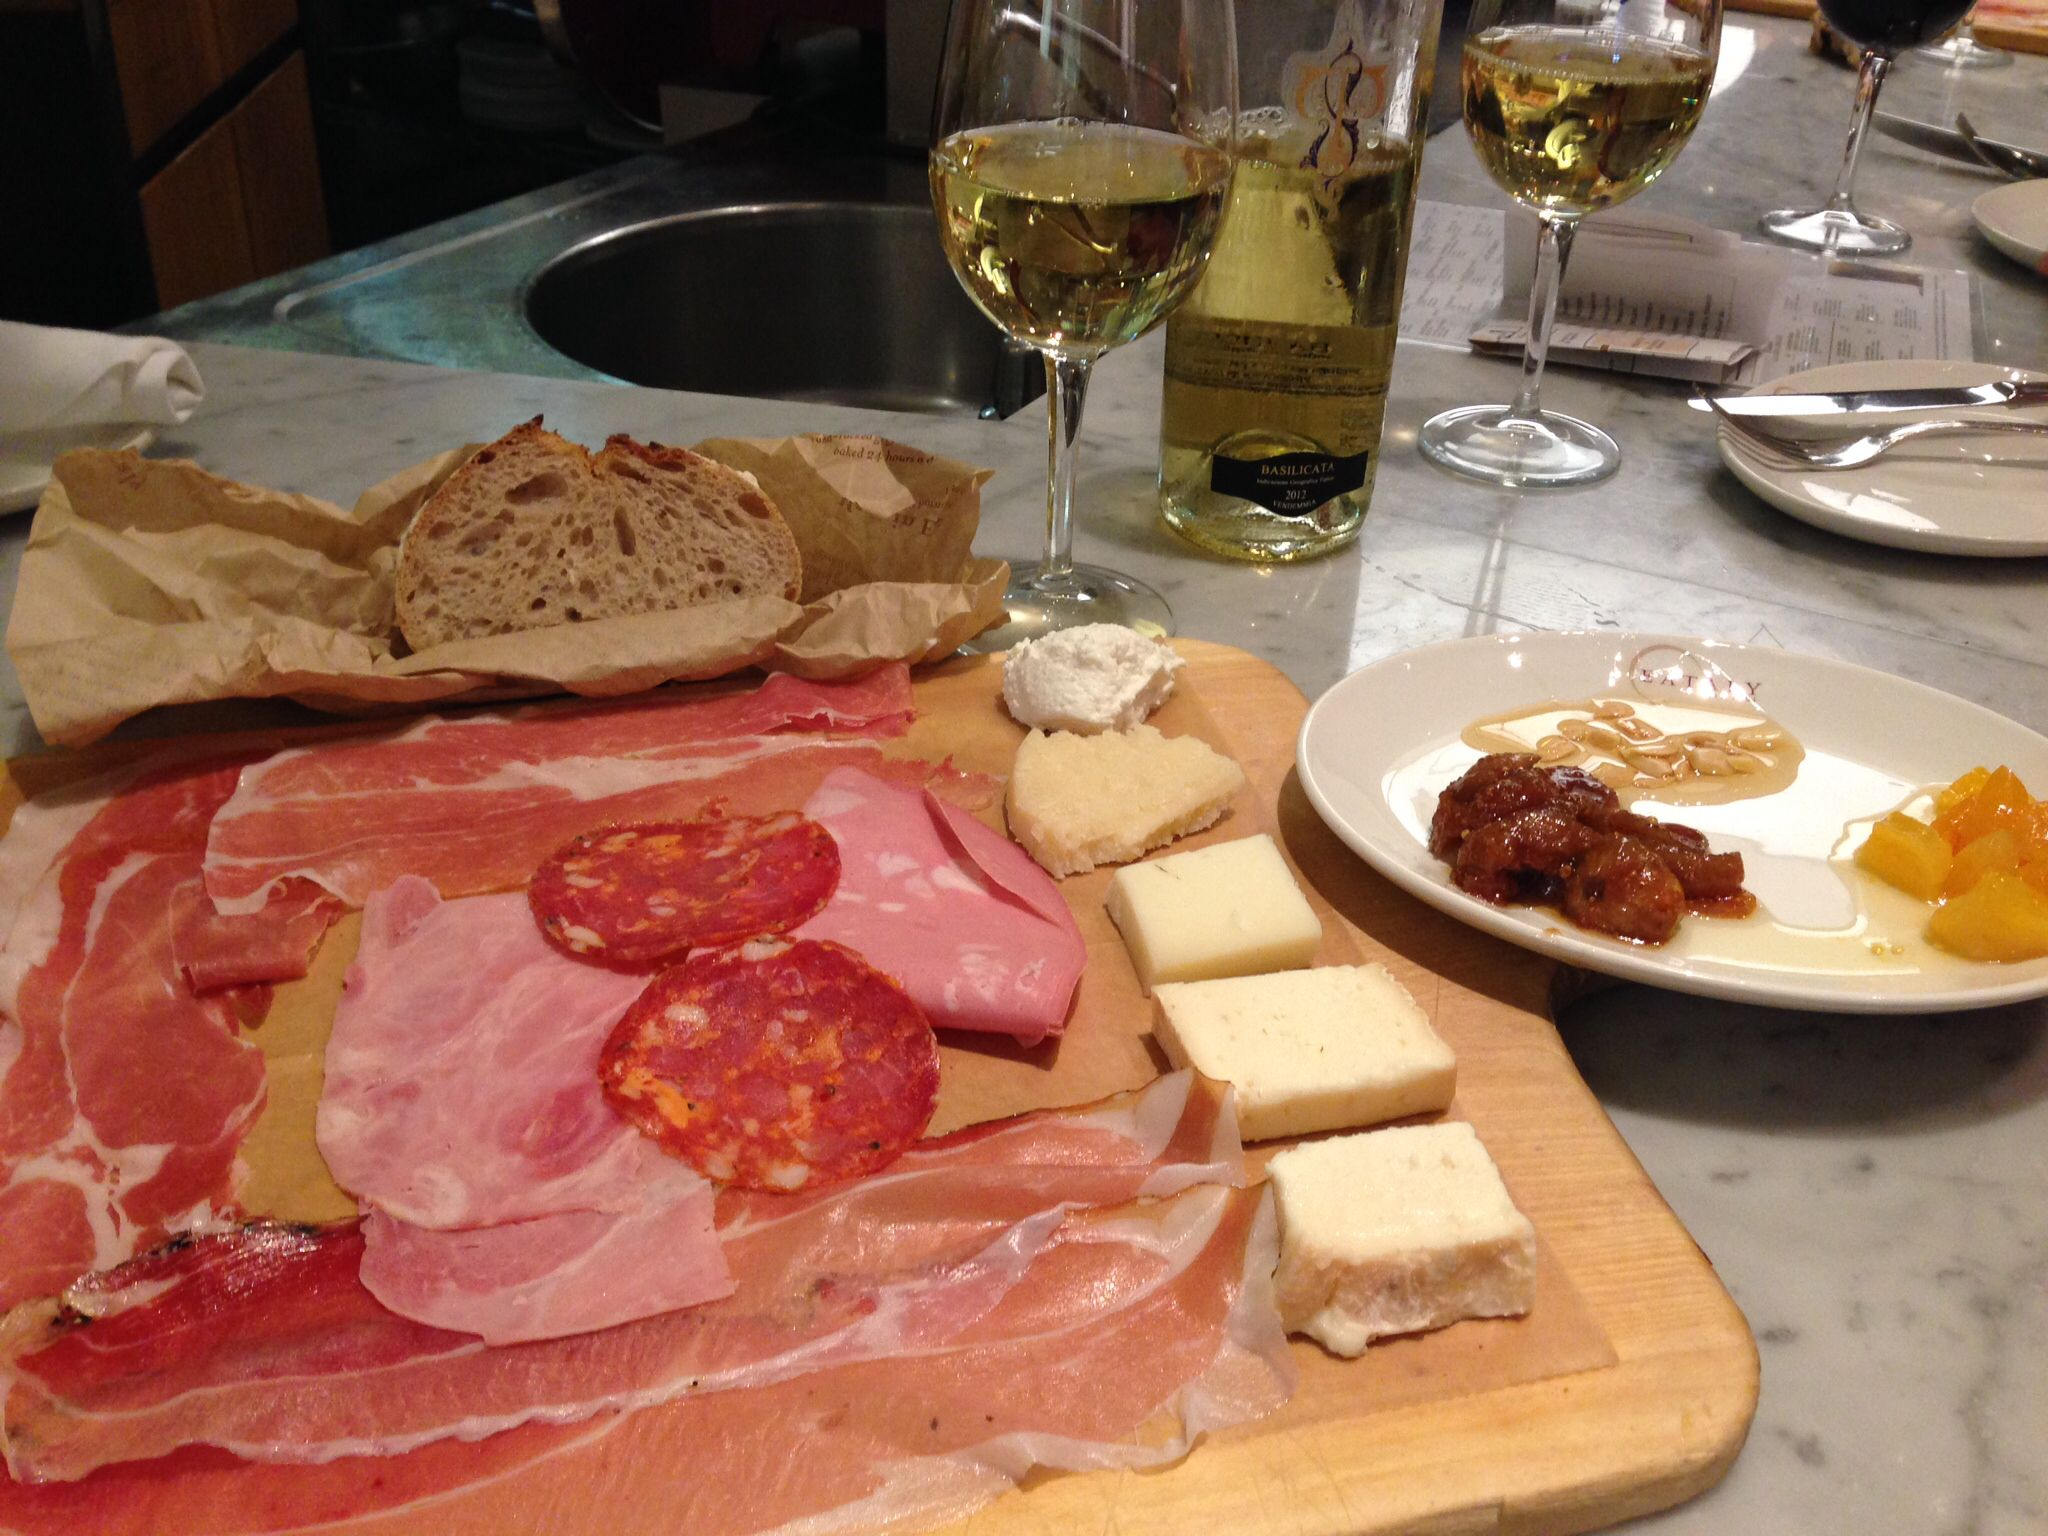 Eataly In Nyc Salami And Cheese Platter Cheese Platters Under The Tuscan Sun Salami And Cheese